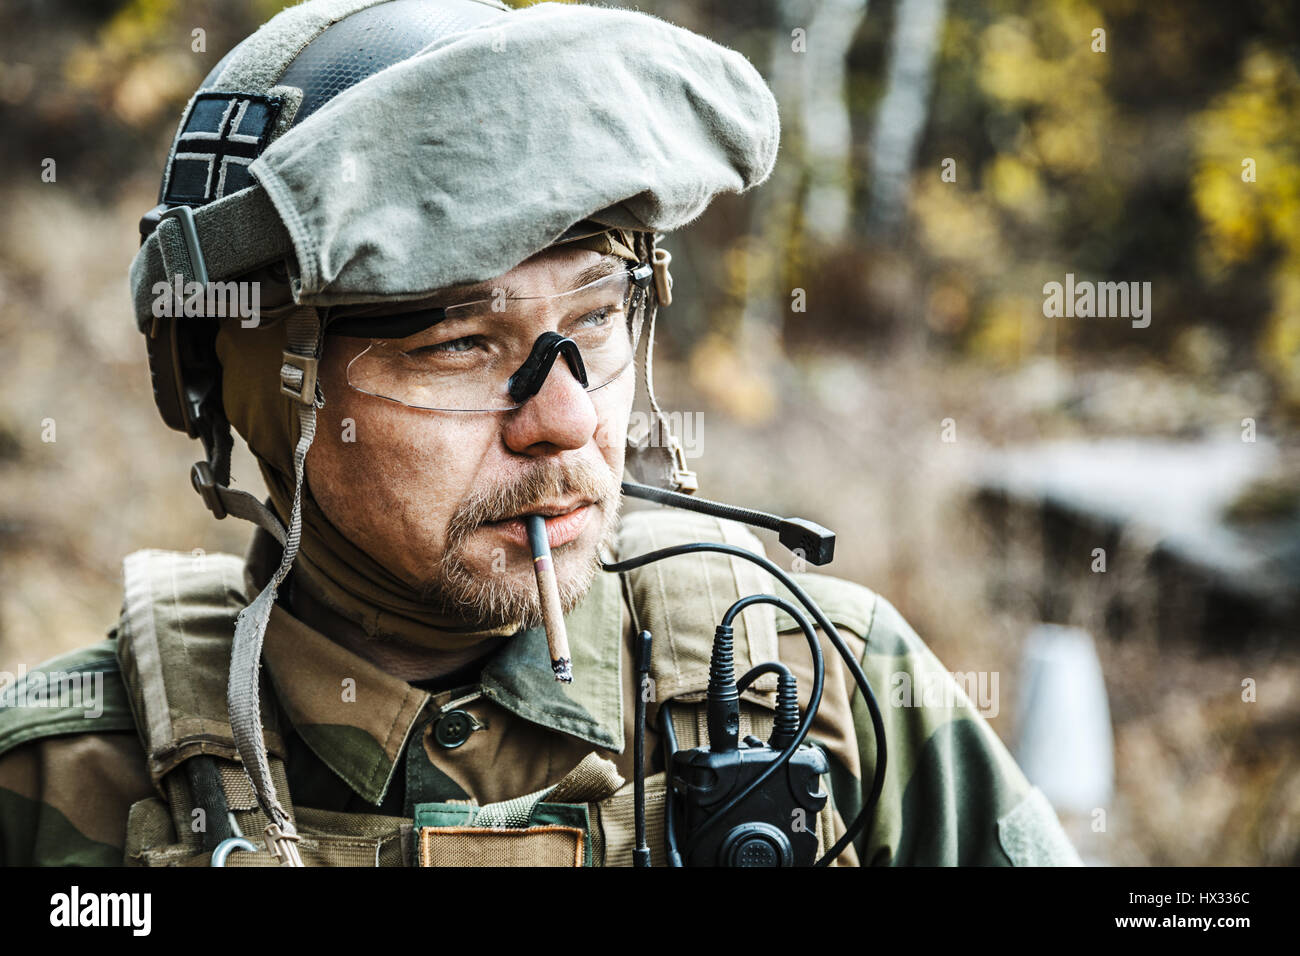 7657e6f1ce0 Norwegian Armed Forces Stock Photos   Norwegian Armed Forces Stock ...